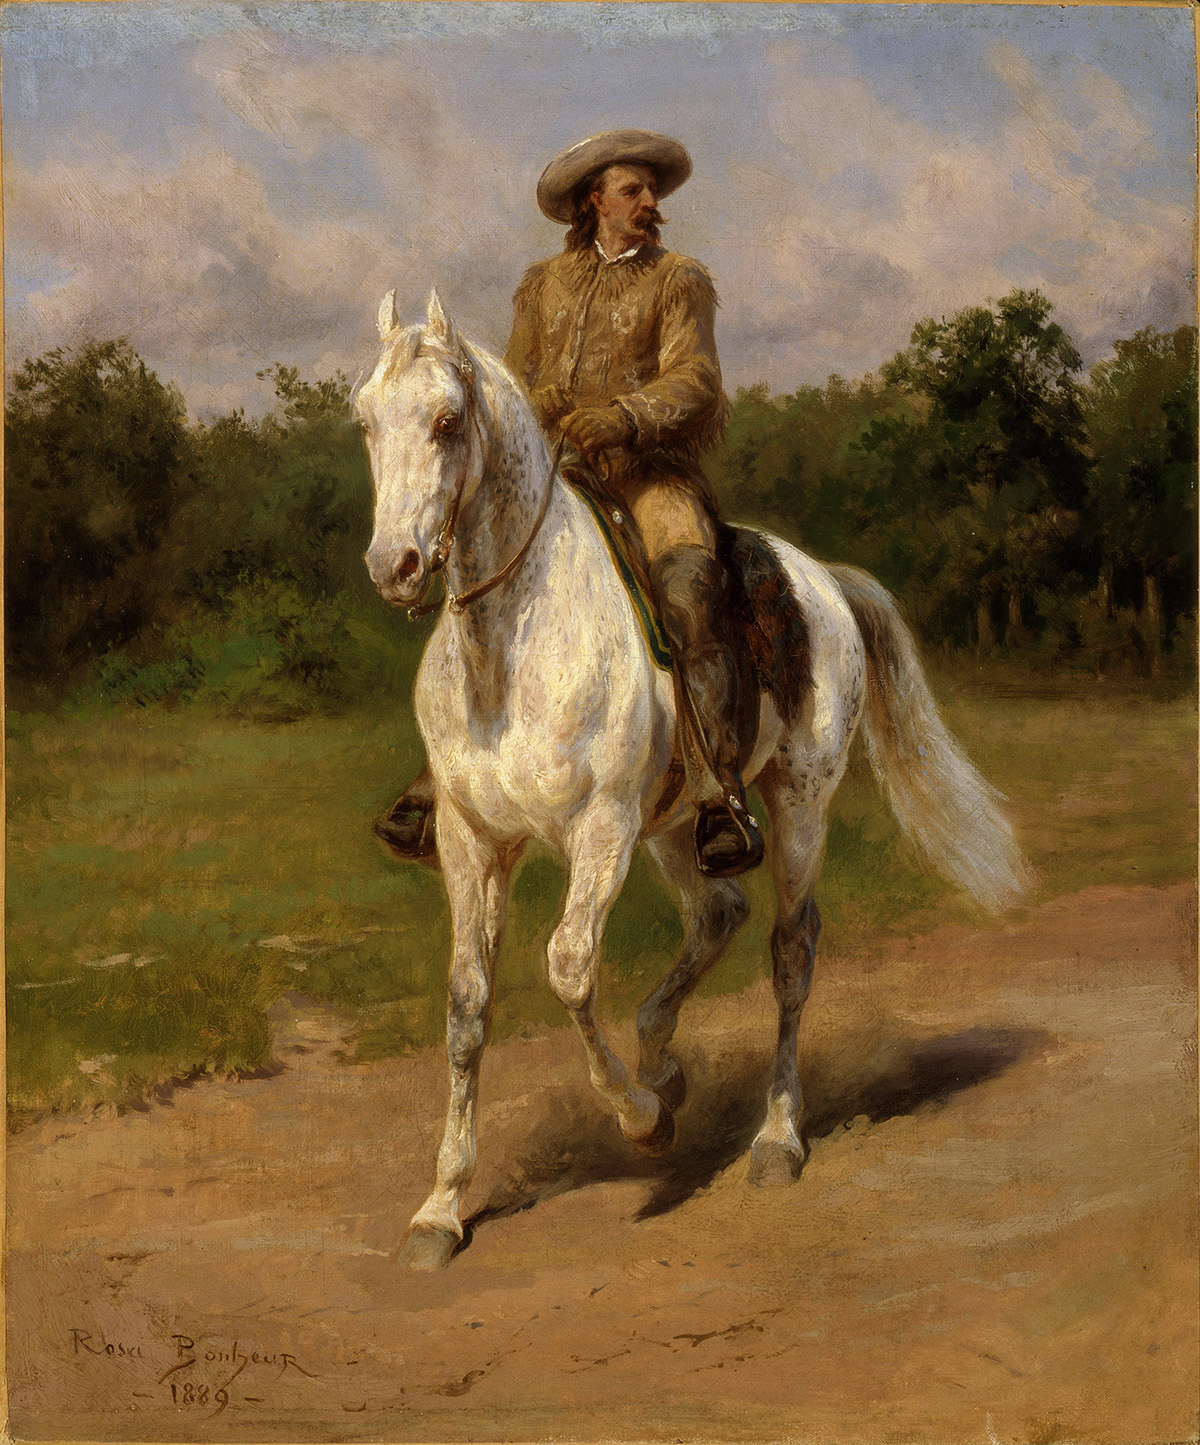 Col. William F. Cody (Buffalo Bill) - Rosa Bonheur, 1889 - Dominio público